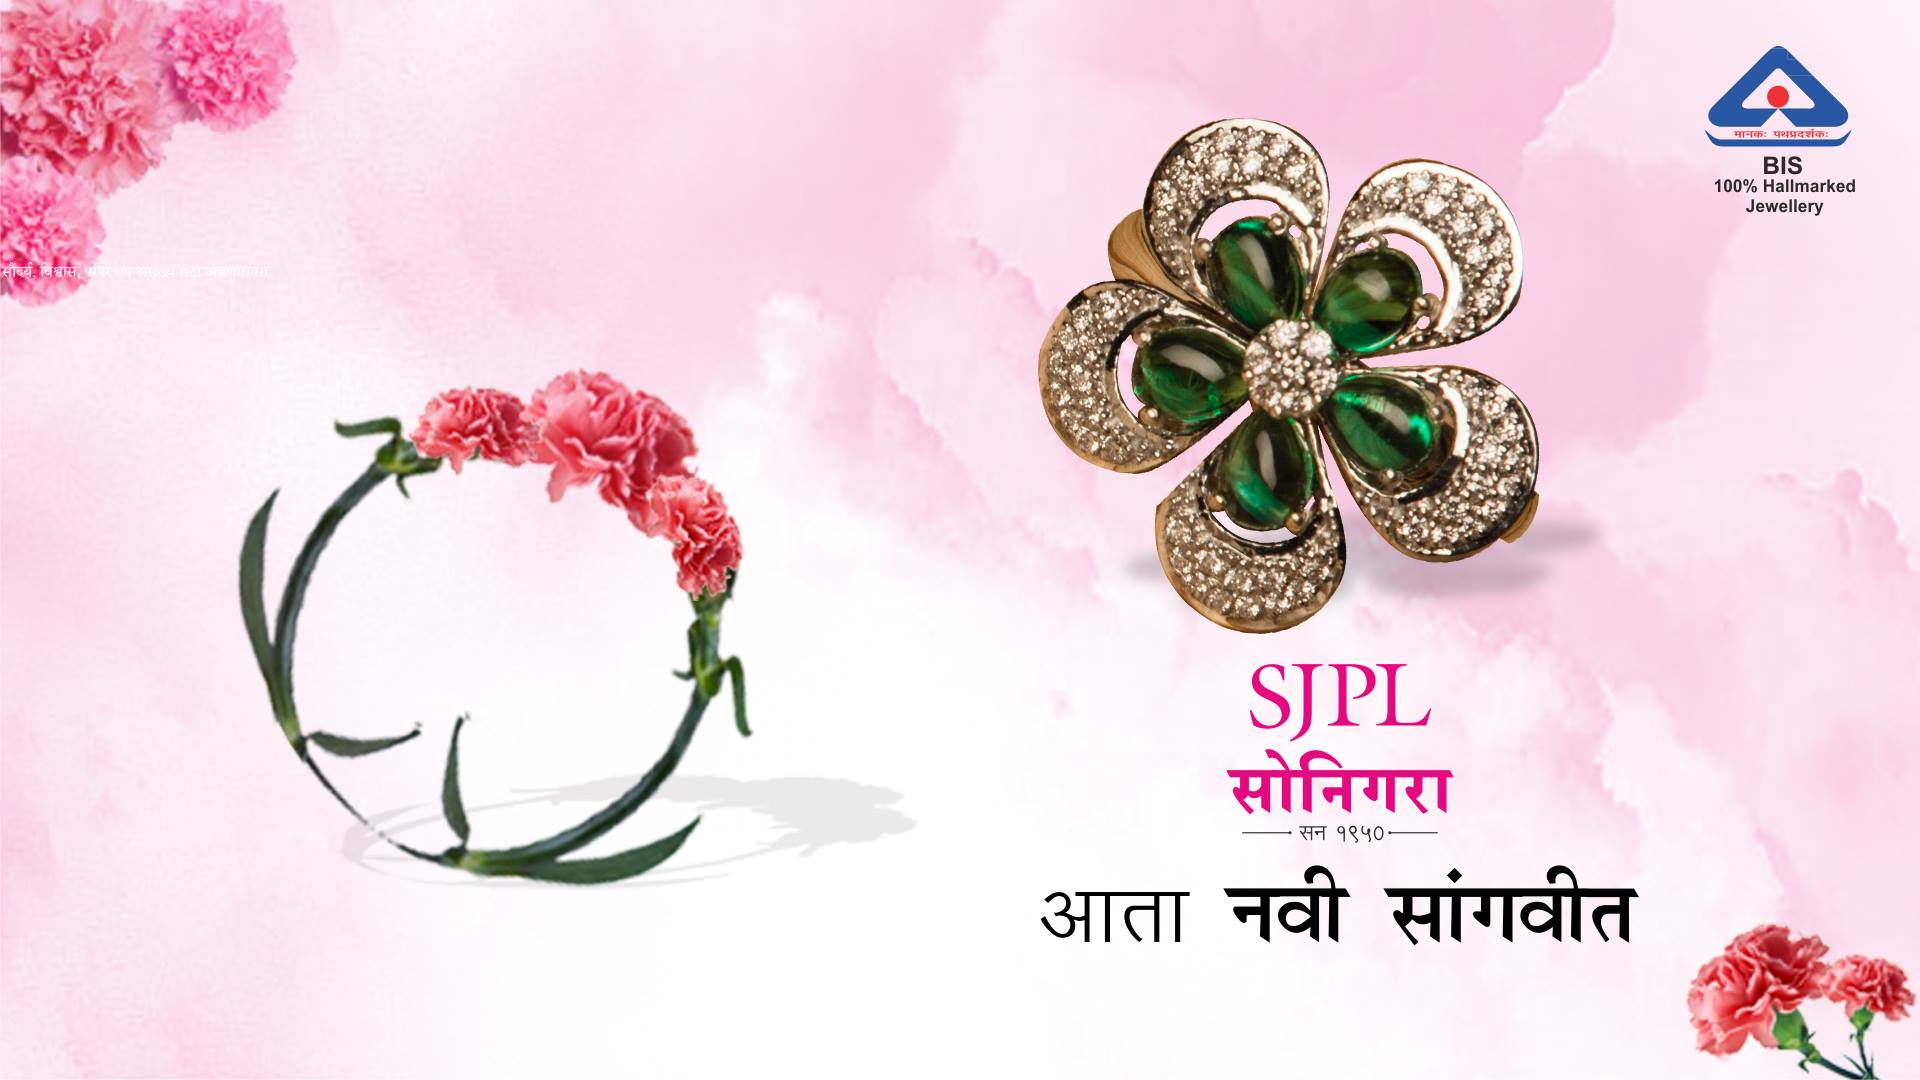 Grand Opening of 4th SJPL Store Sangavi,Pune Opening Ceremony